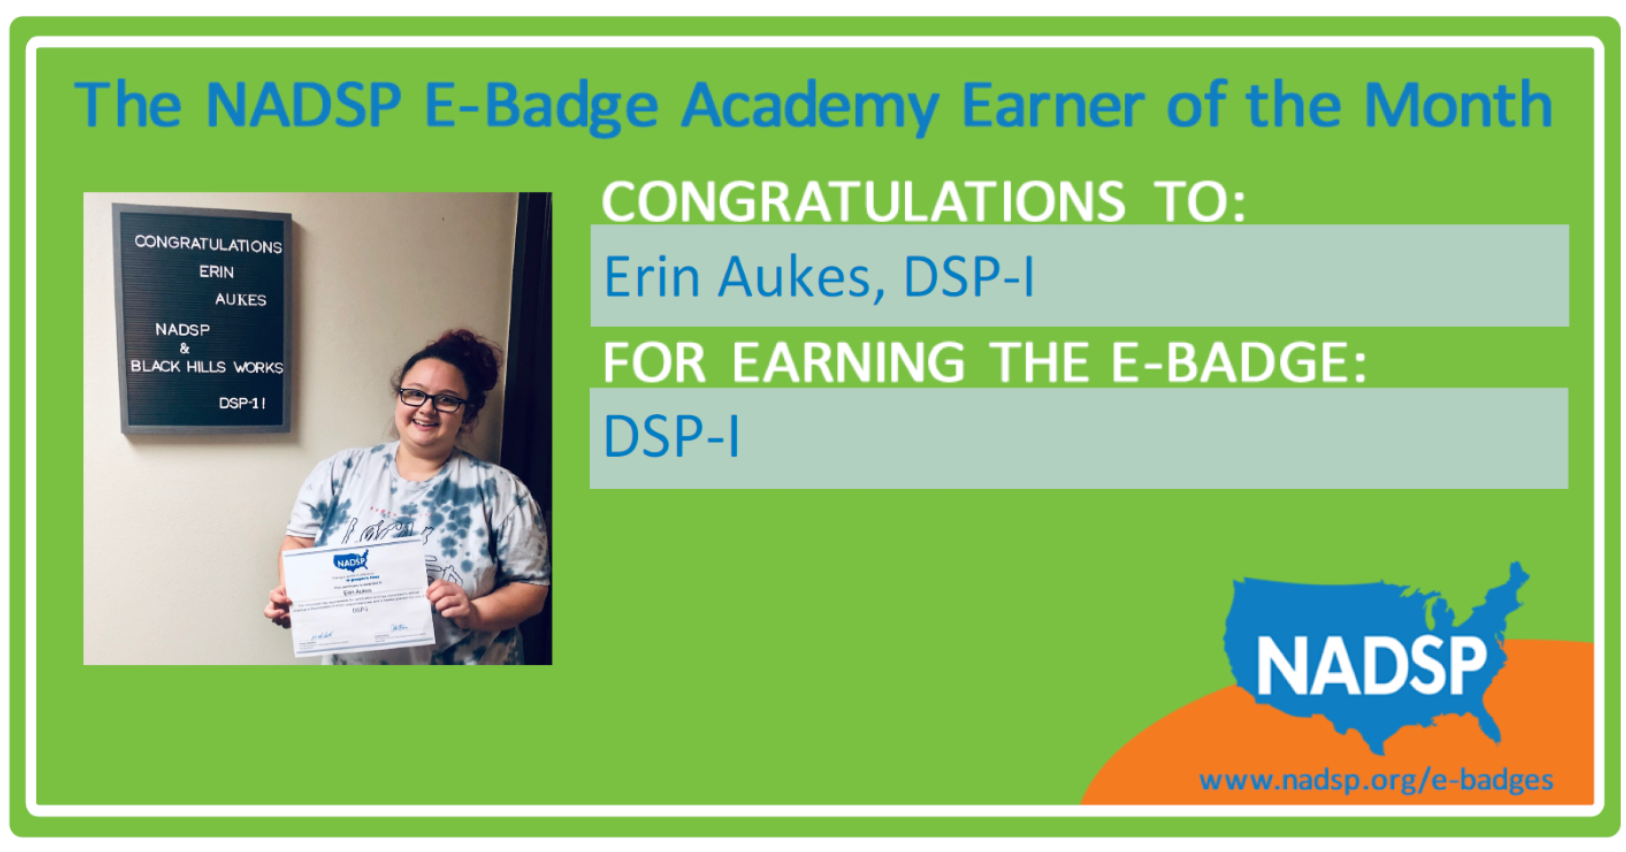 March E-Badge Earner of the Month: Erin Aukes of Black Hills